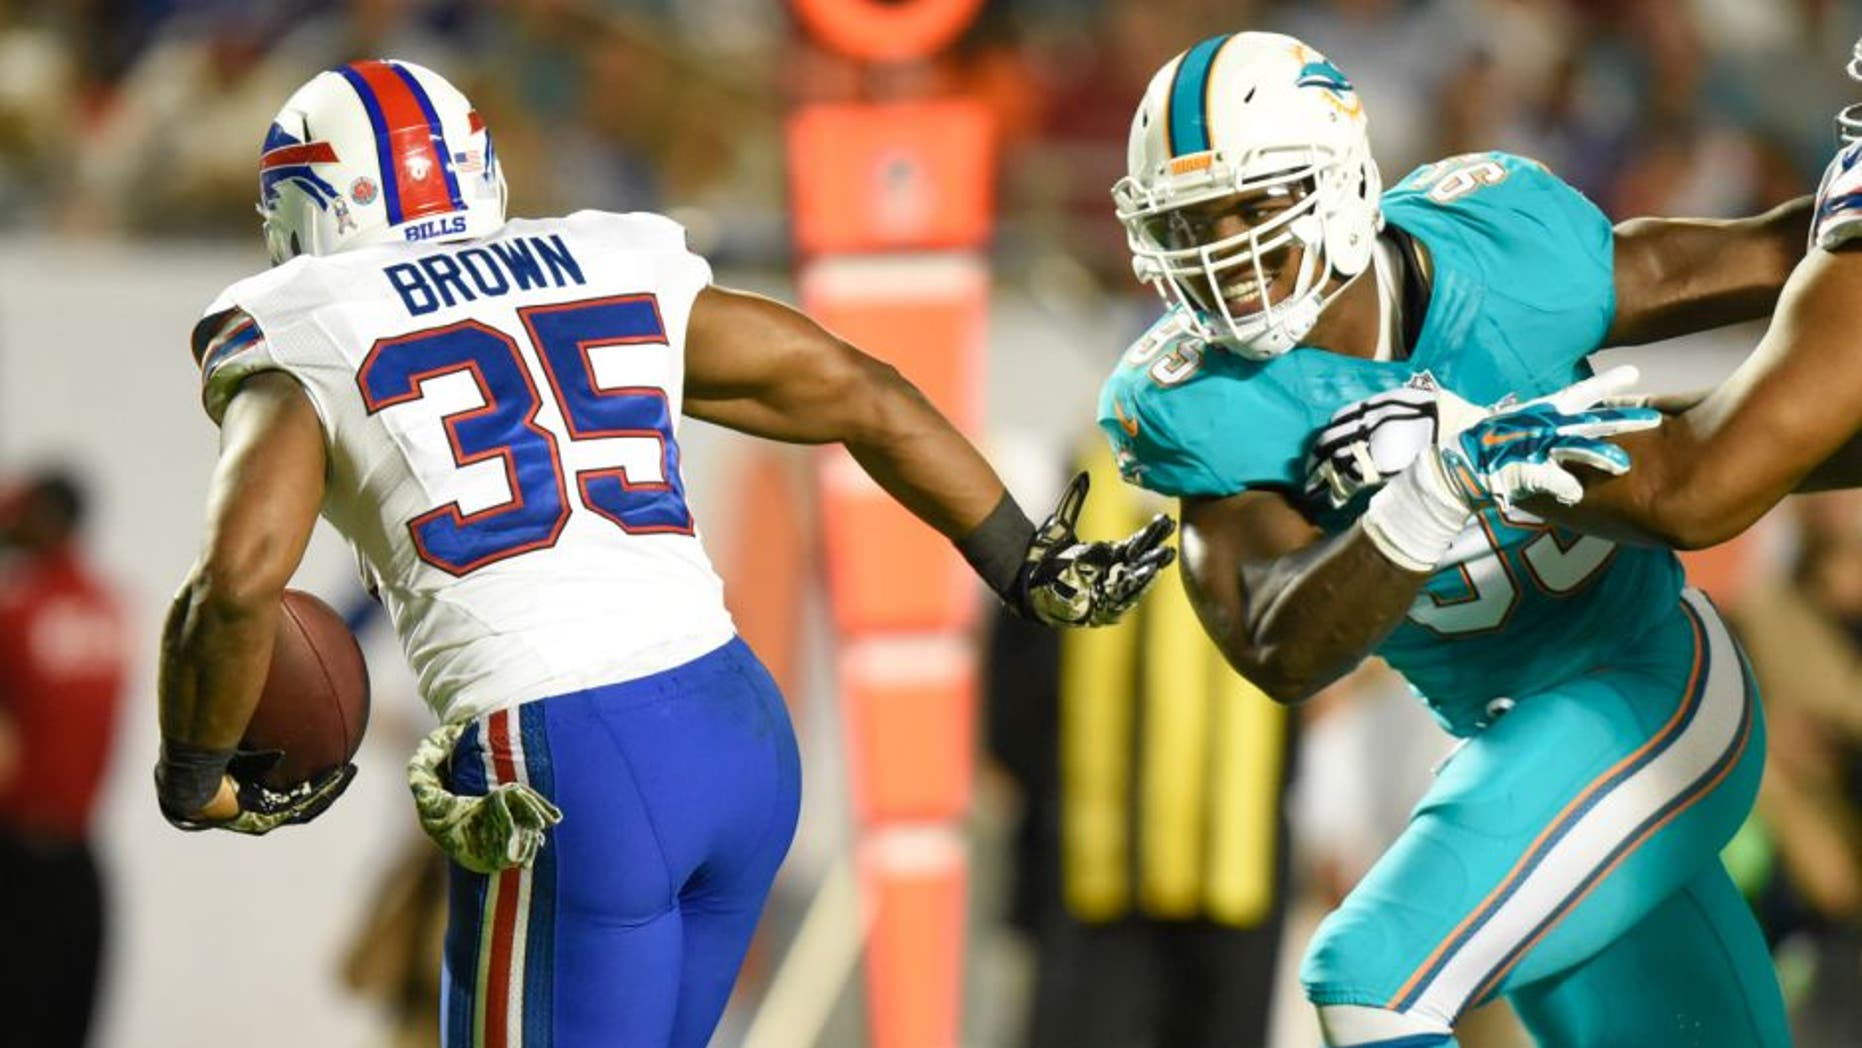 Nov 13, 2014; Miami Gardens, FL, USA; Miami Dolphins long snapper John Denney (92) tries to tackle Buffalo Bills running back Bryce Brown (35) in the first half of the game at Sun Life Stadium. Mandatory Credit: Brad Barr-USA TODAY Sports